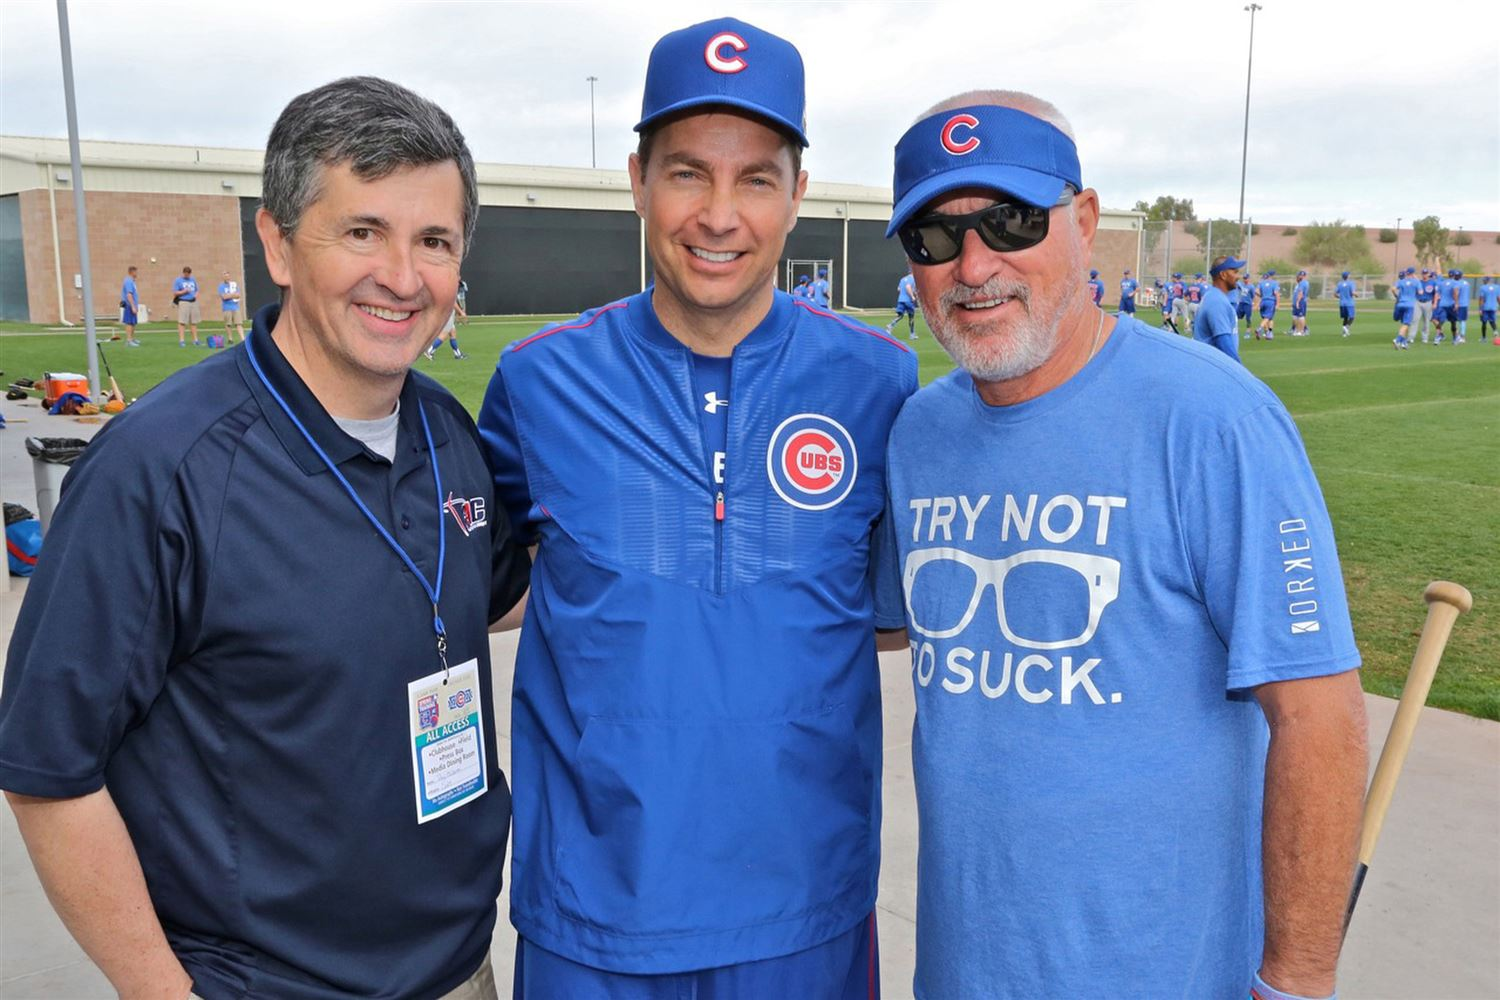 Cougars looking for cubs in chicago